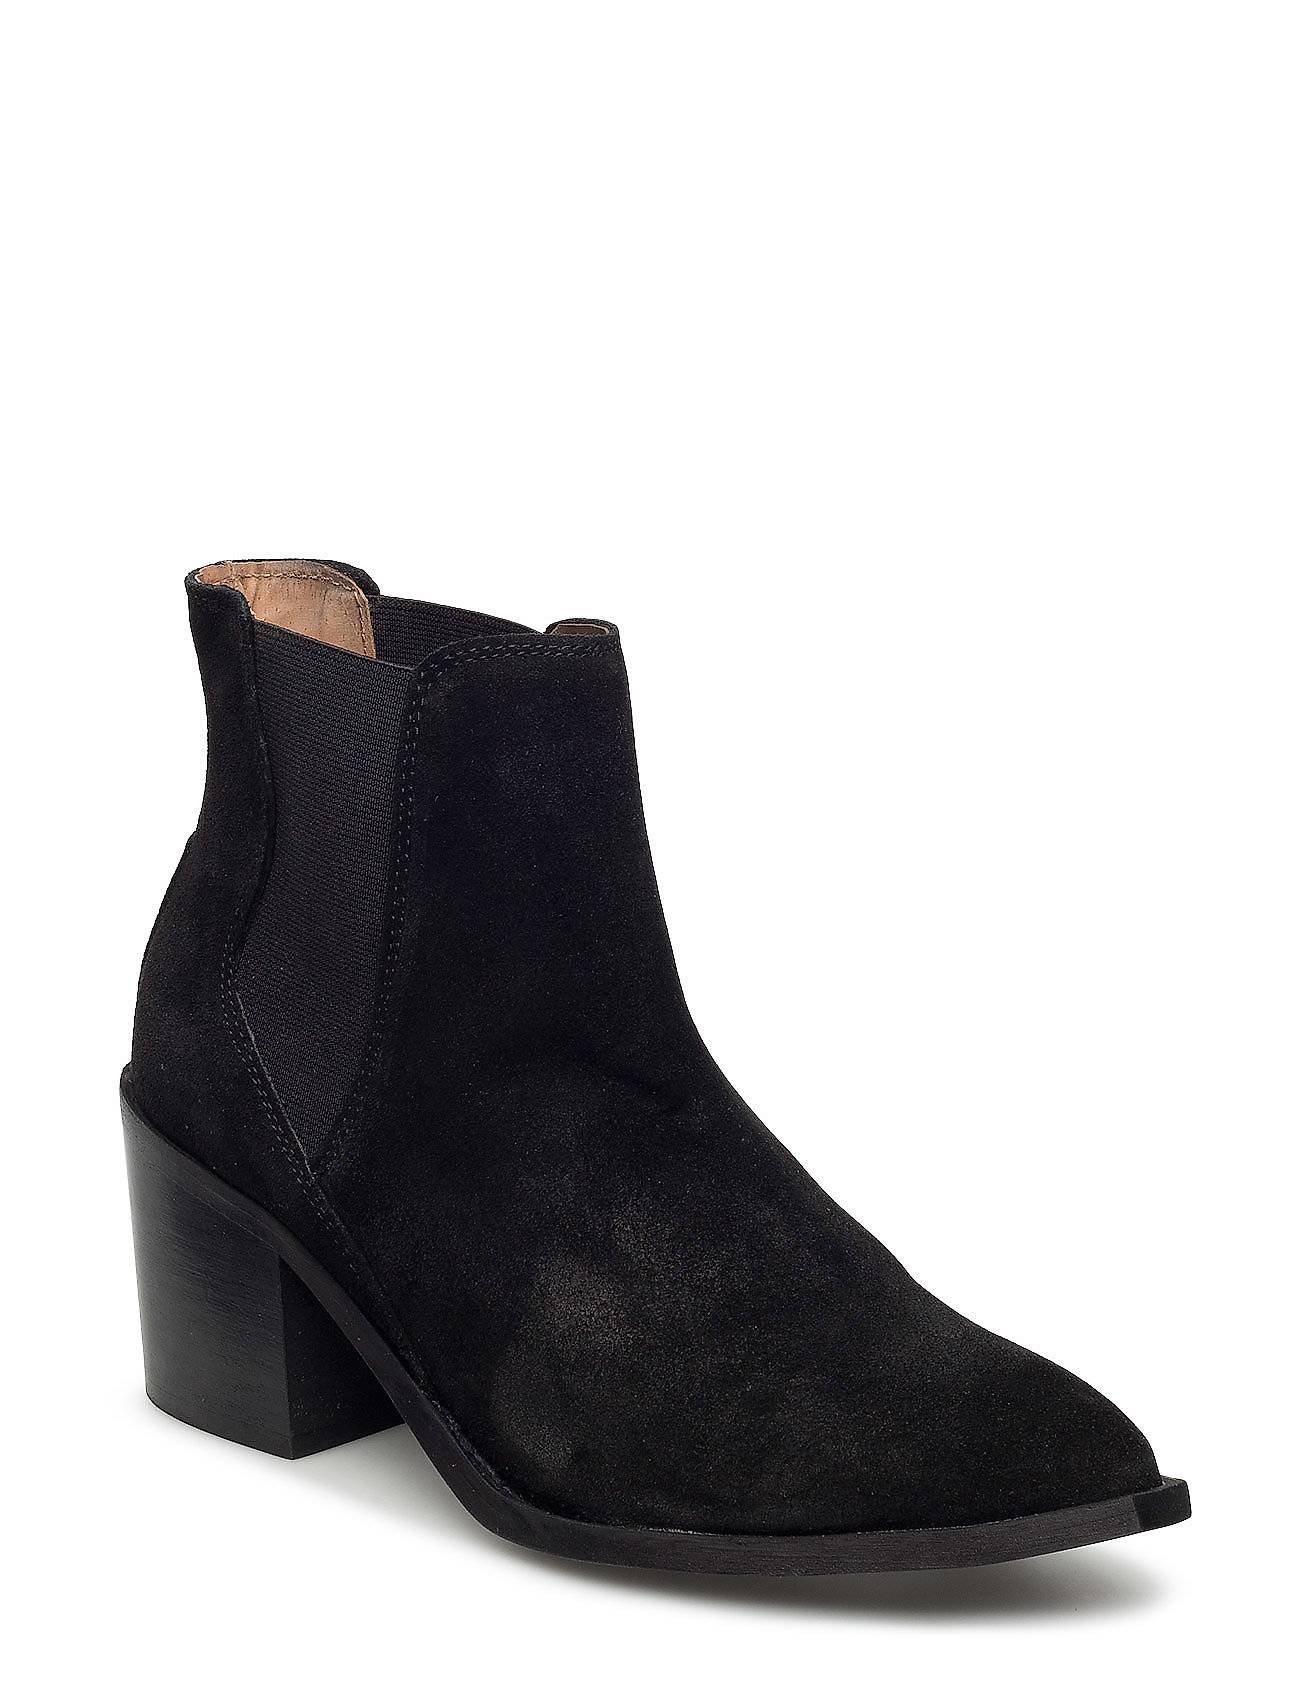 Selected Femme Sfelena High Heel Suede Boot